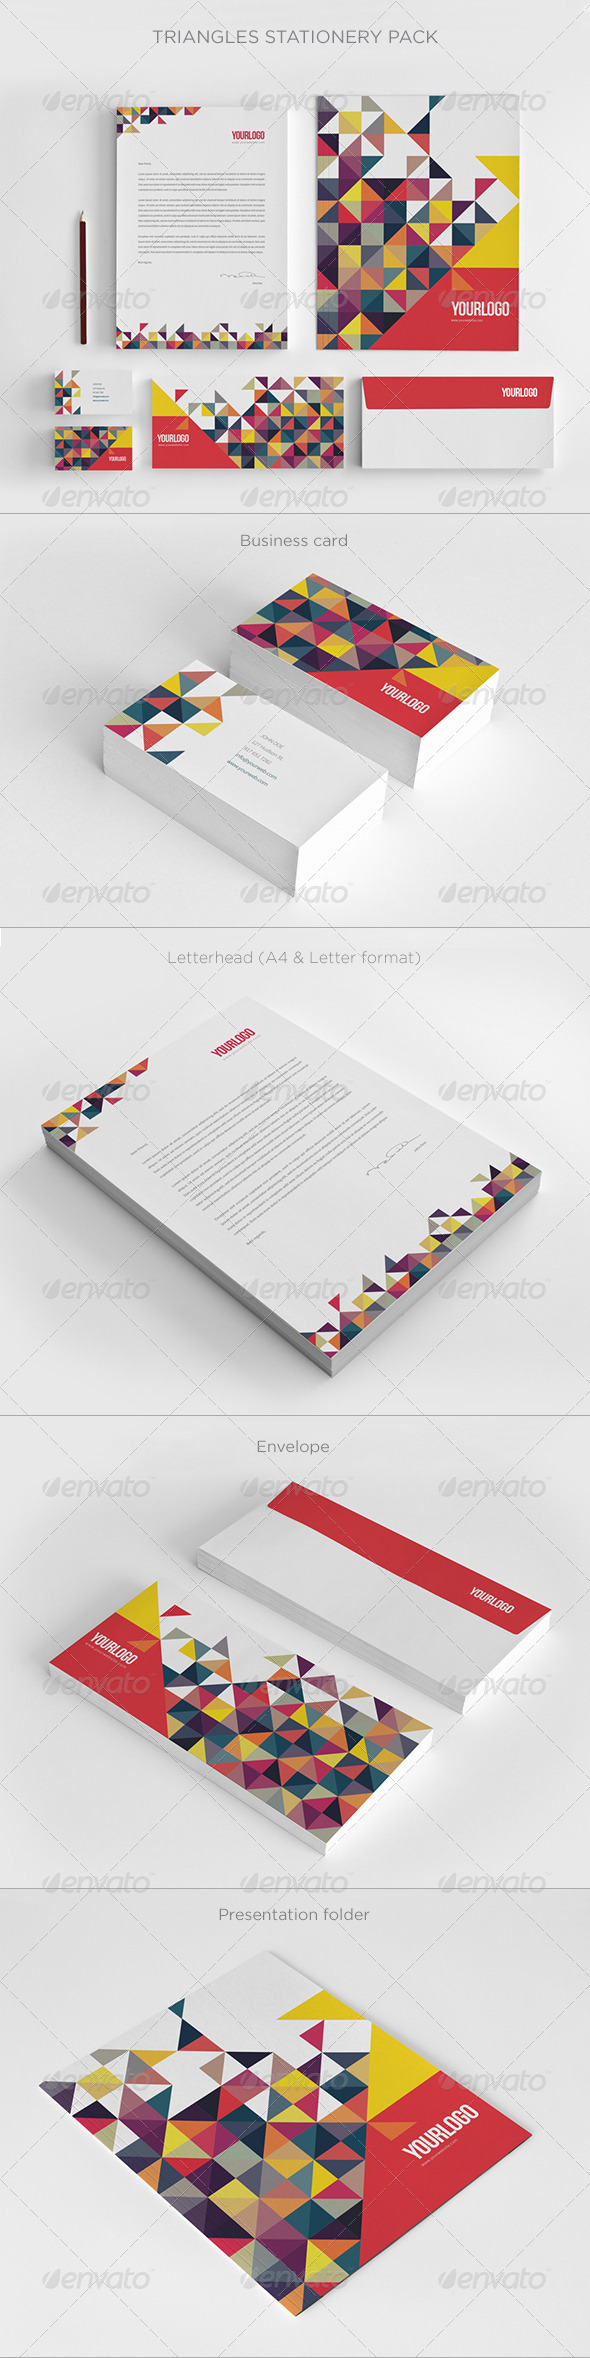 Colorful Triangles Stationery - Stationery Print Templates